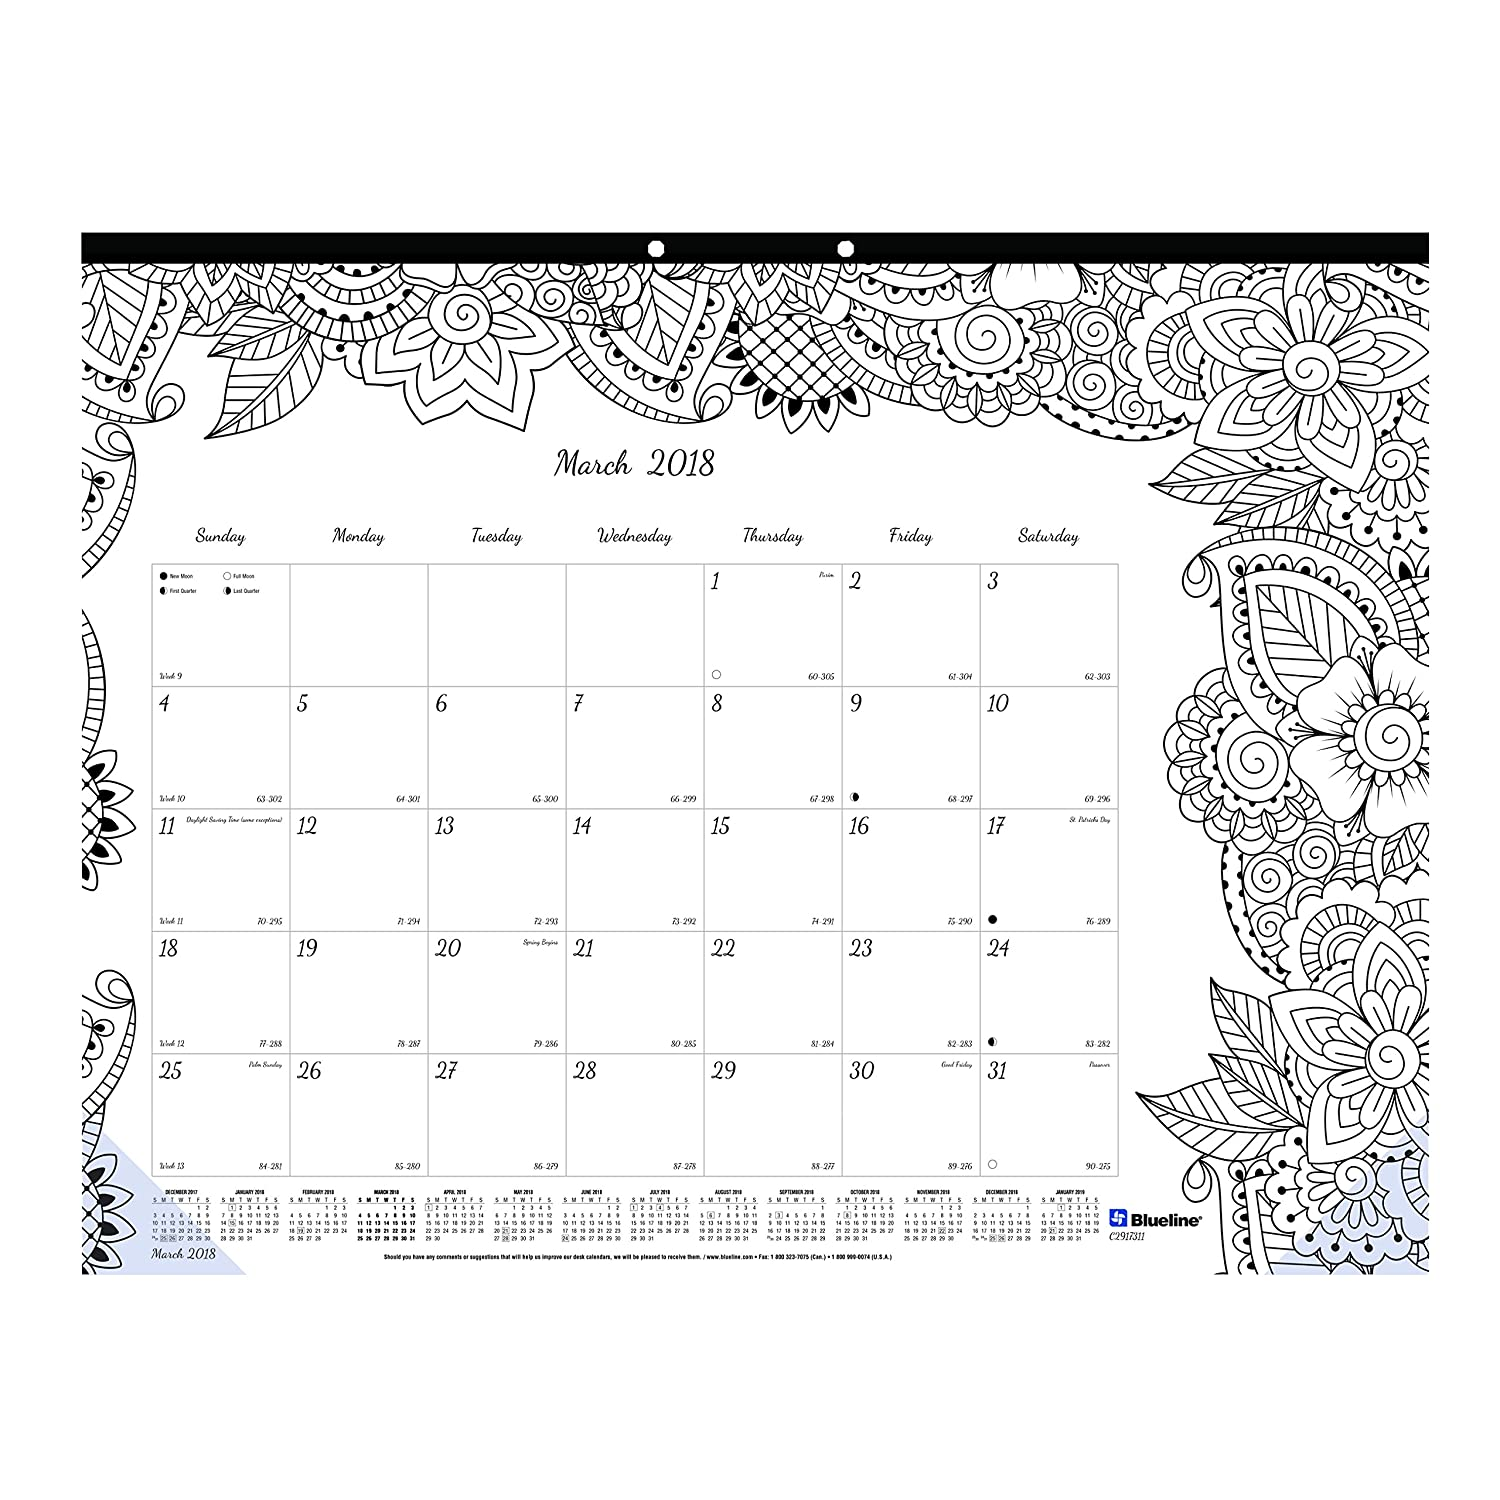 blueline 2019 doodleplan monthly coloring desk pad calendar botanica designs january to december